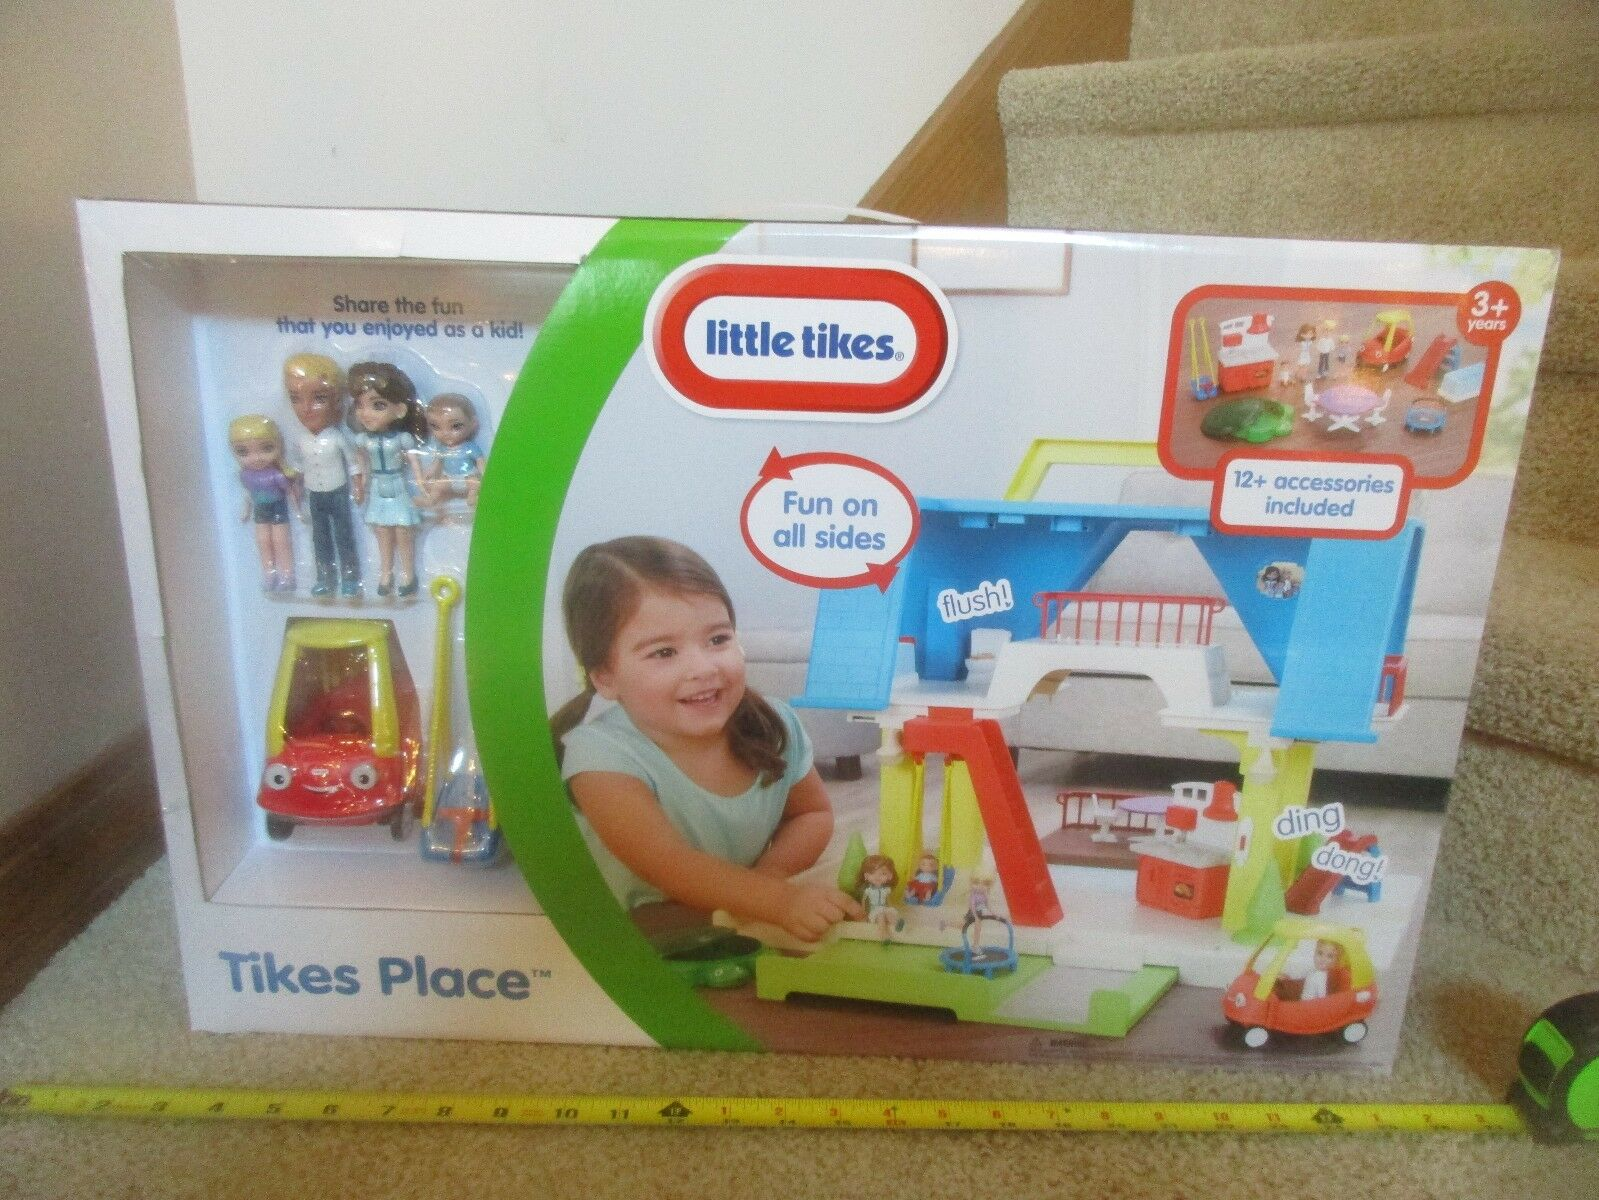 Little tike tikes place play set NIB fun fun fun to share car swing people house stove c9b9b8